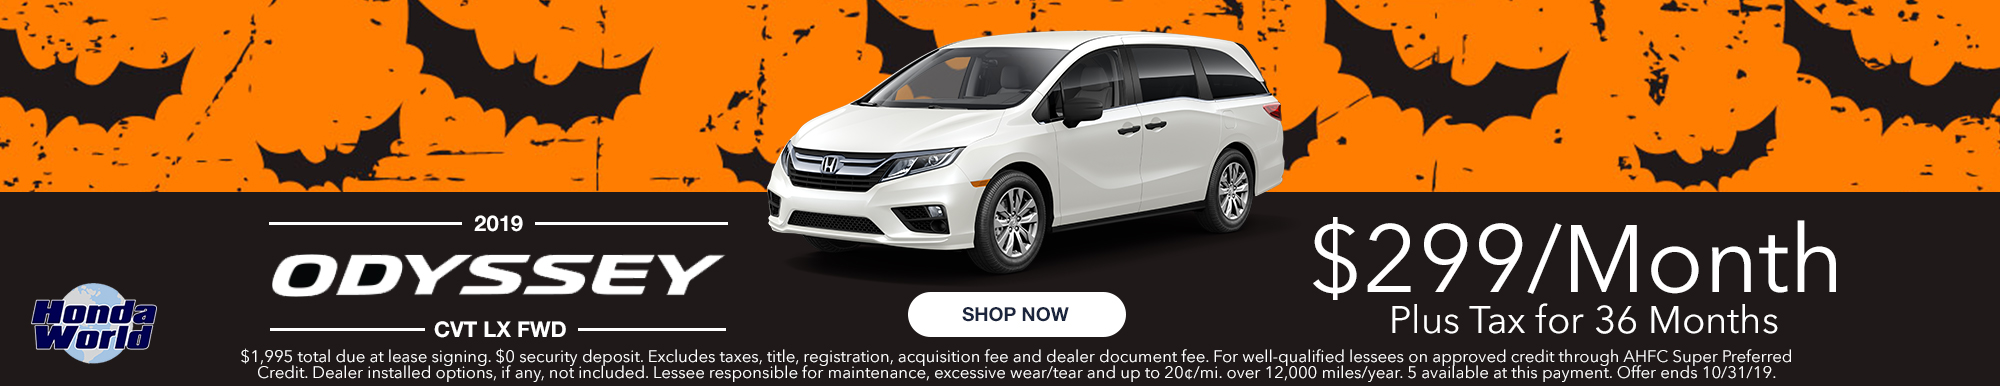 2019 Honda Odyssey Lease Offer $299 a month